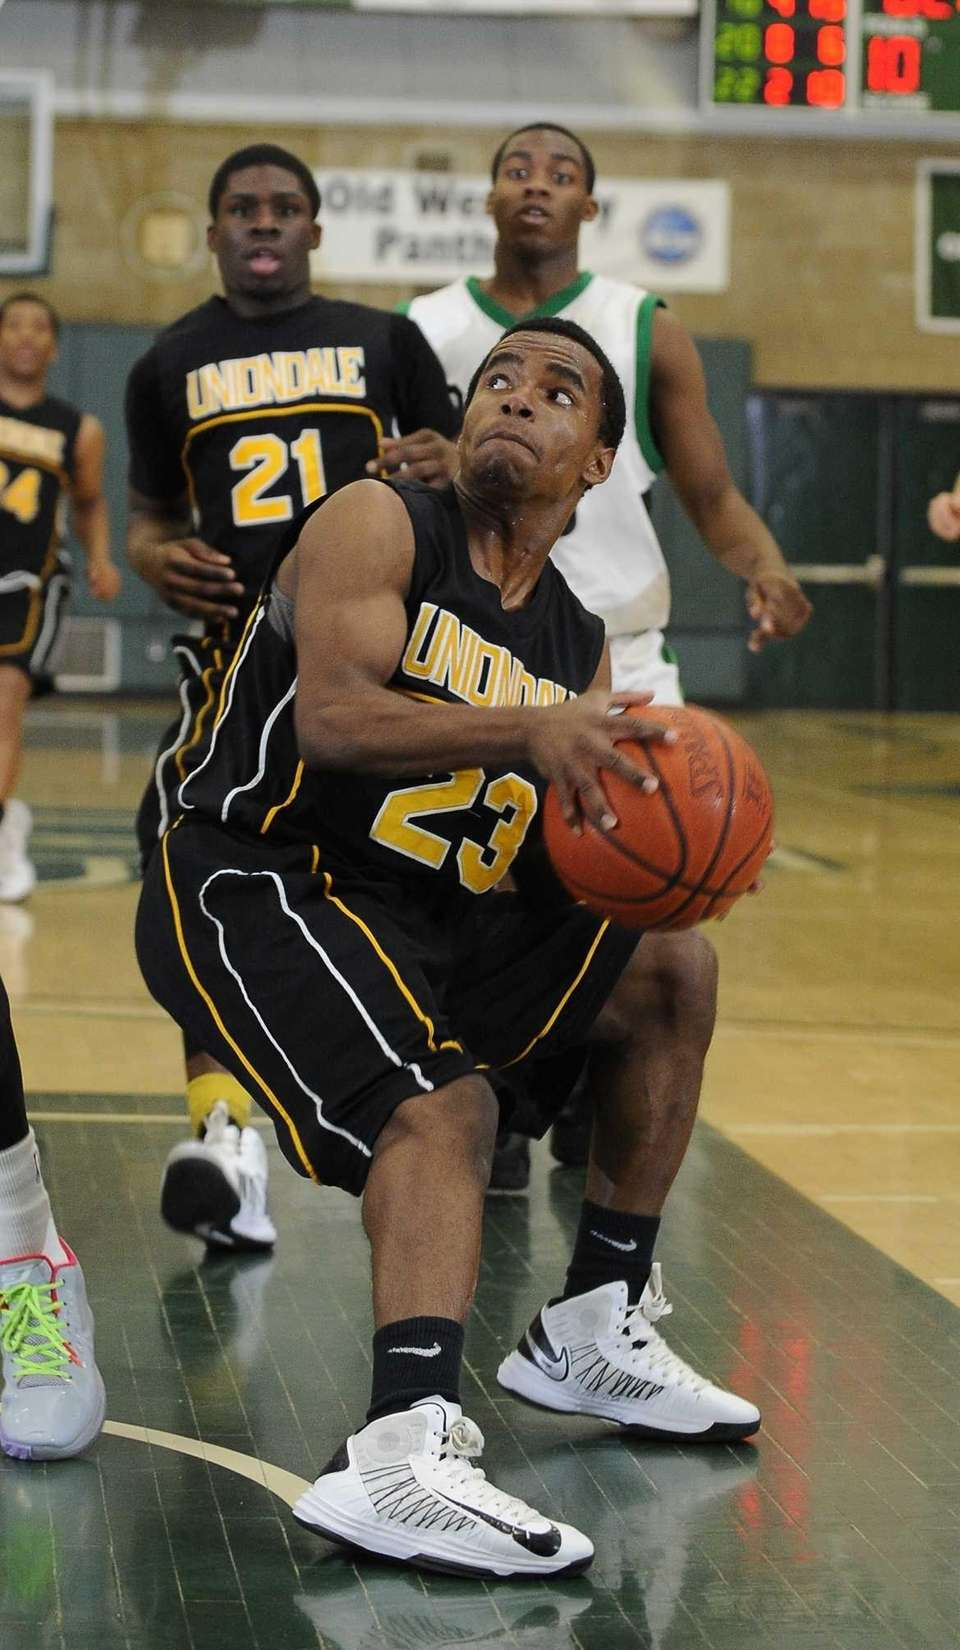 Uniondale Jerel McGary sets before shooting from under